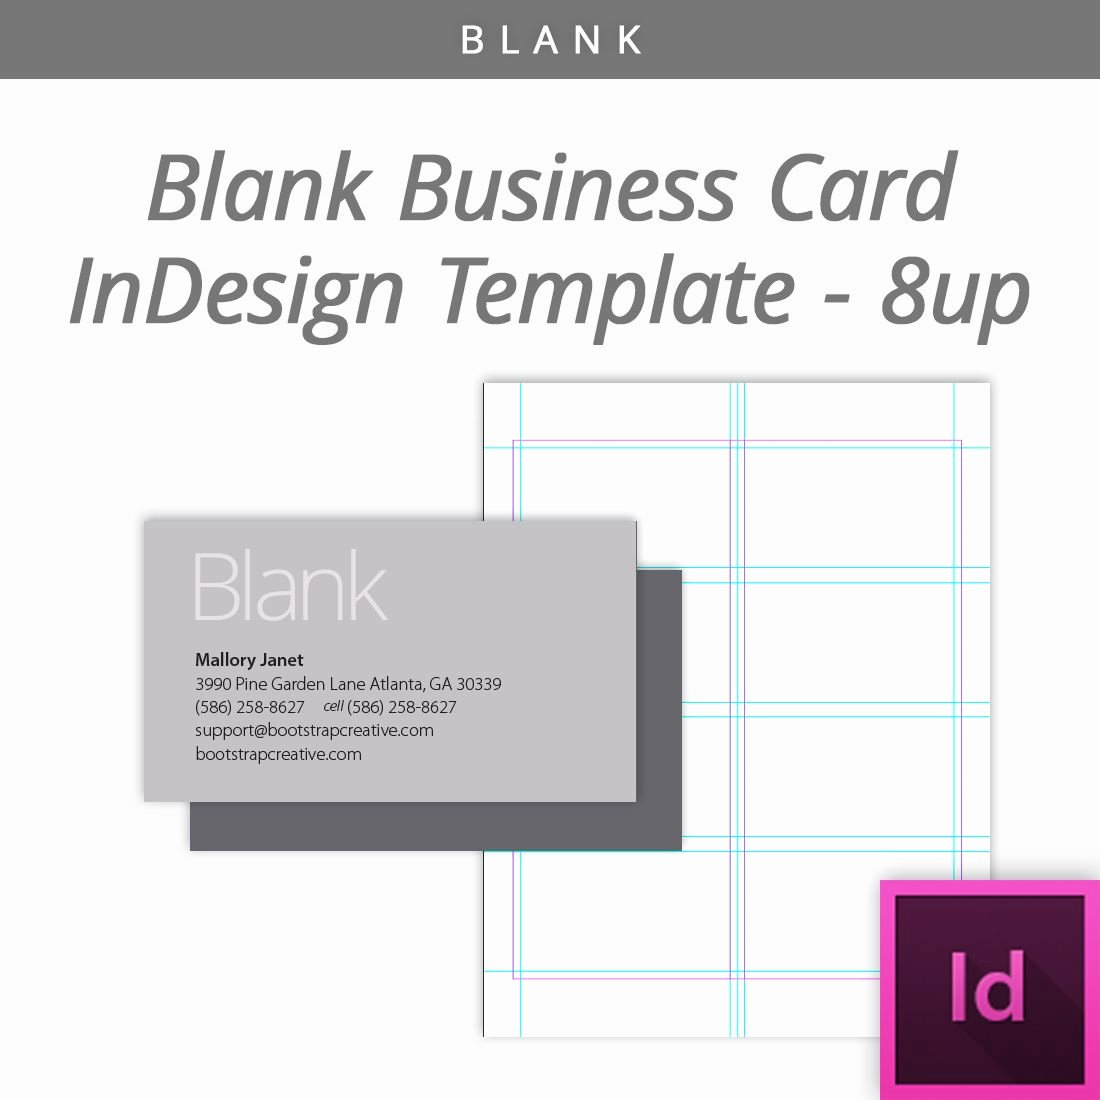 Business Card Layout Template Awesome Blank Indesign Business Card Template 8 Up Free Download